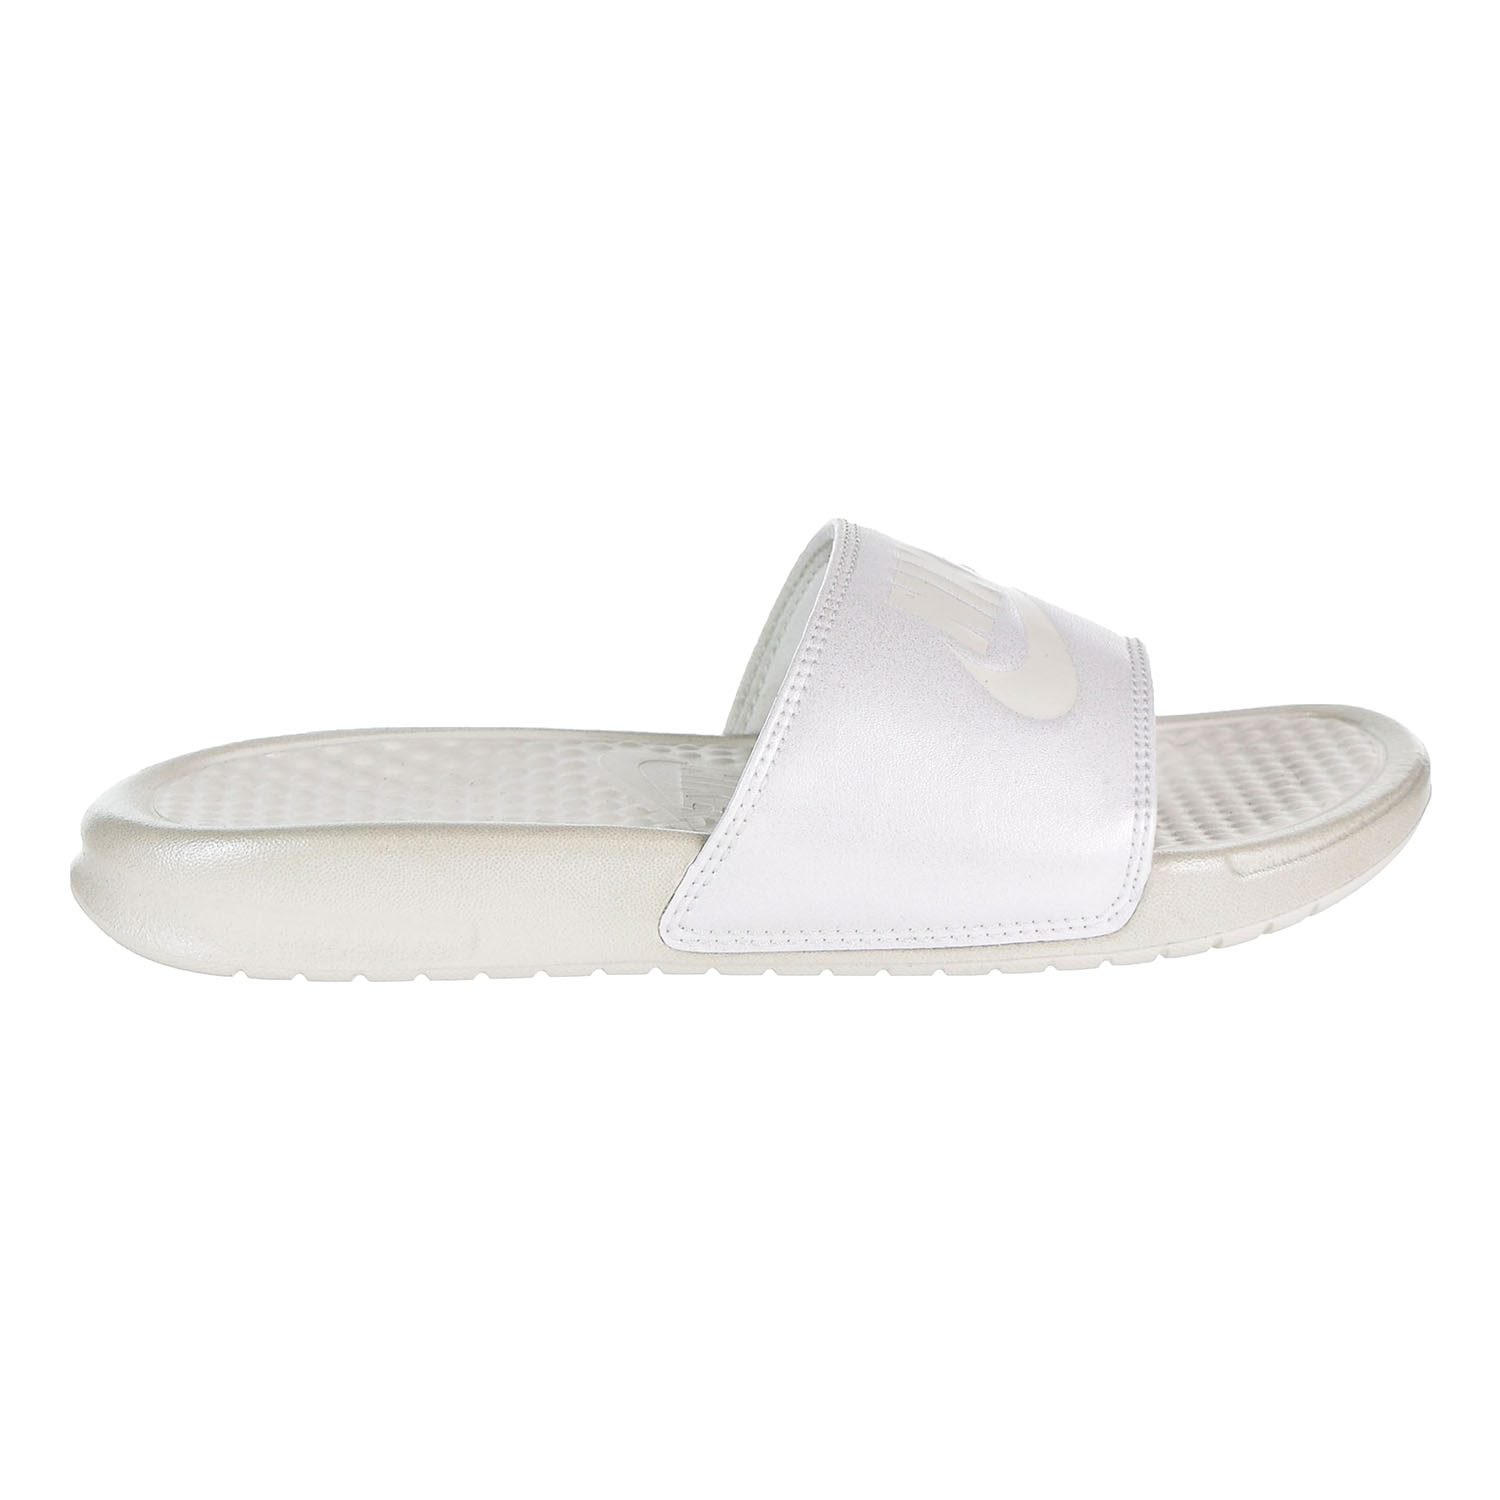 95a13a92dbb9f0 Nike - Nike Benassi JDI Metallic QS Women s Slides Metallic Summit White Summit  White aa4149-100 - Walmart.com